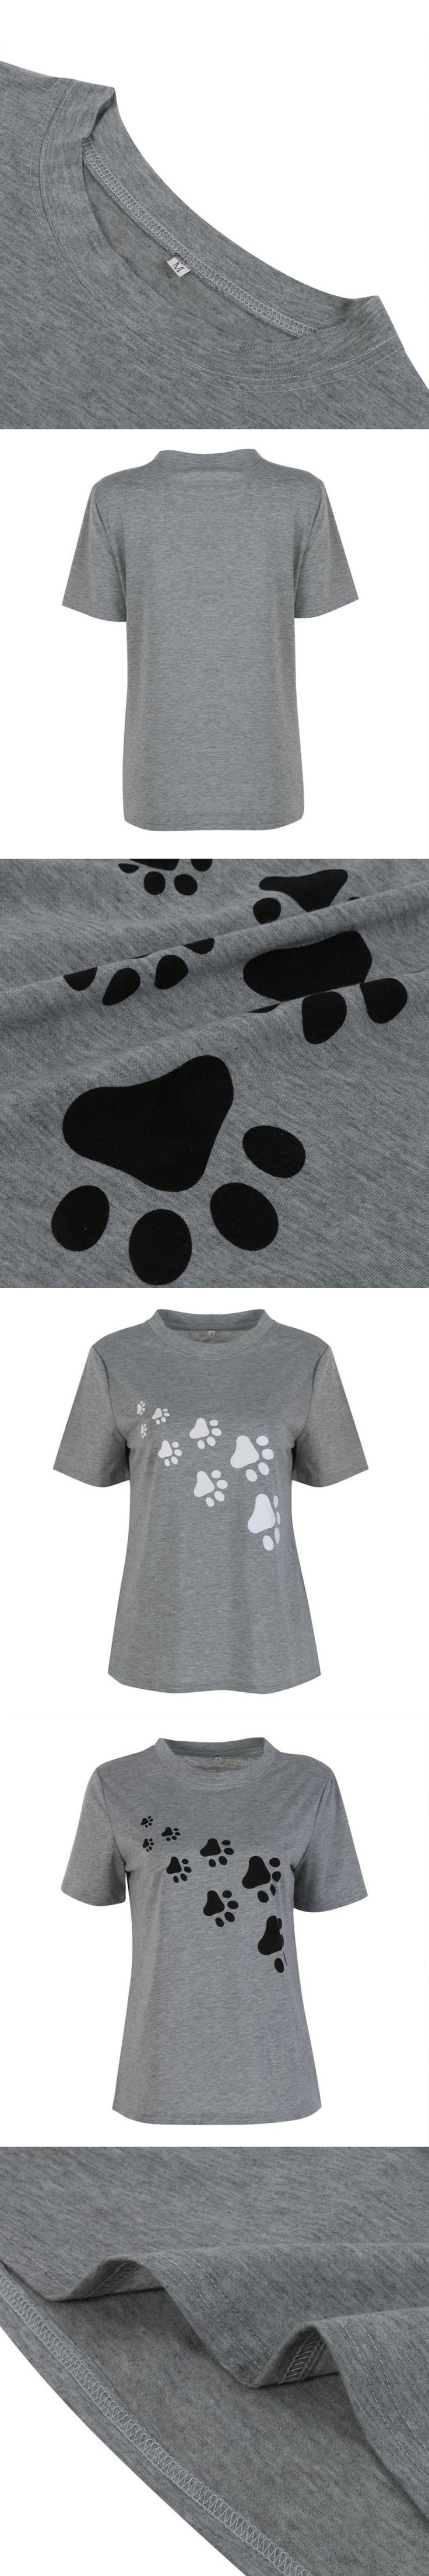 Women Cat Paws Print T Shirt Cotton Casual Funny T Shirt For Lady Tee Hipster gray Tops P2